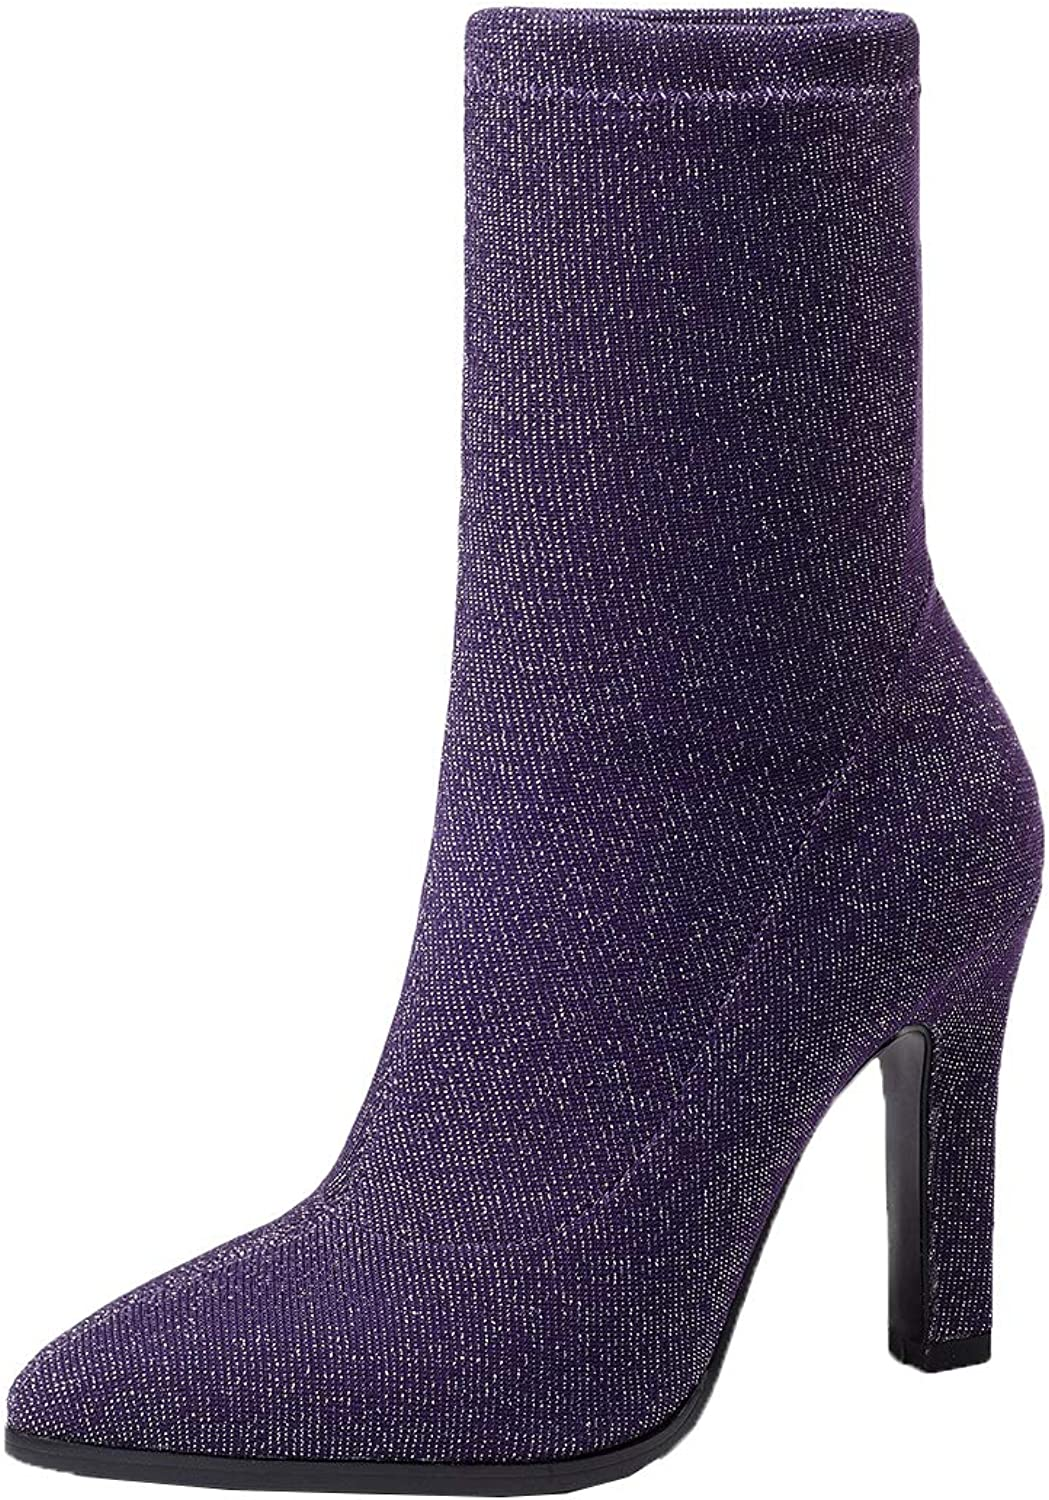 Kikiva Womens Thin High Heel Stiletto Knit Sock Boots Pointed Toe Elastic Breathable Ankle Booties